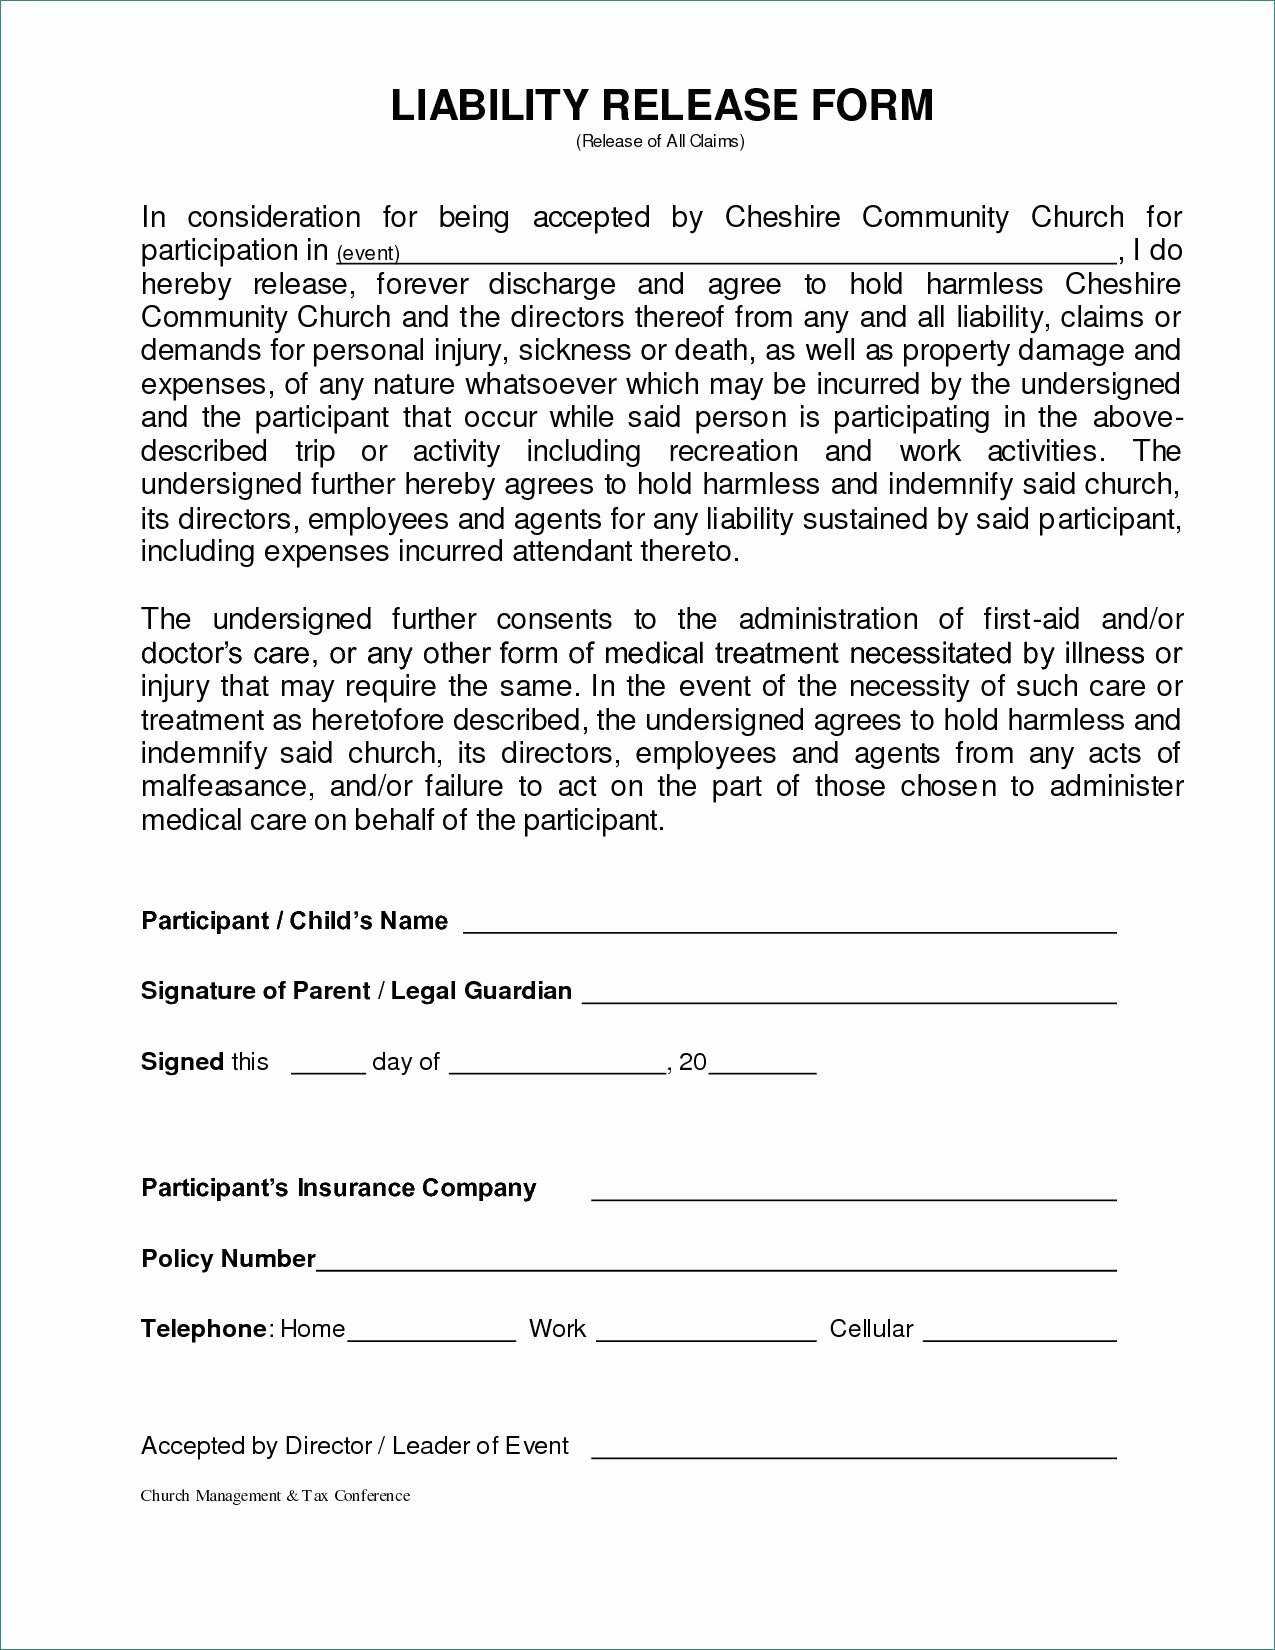 Image Release form Template Awesome General Liability Release form Image – General Liability